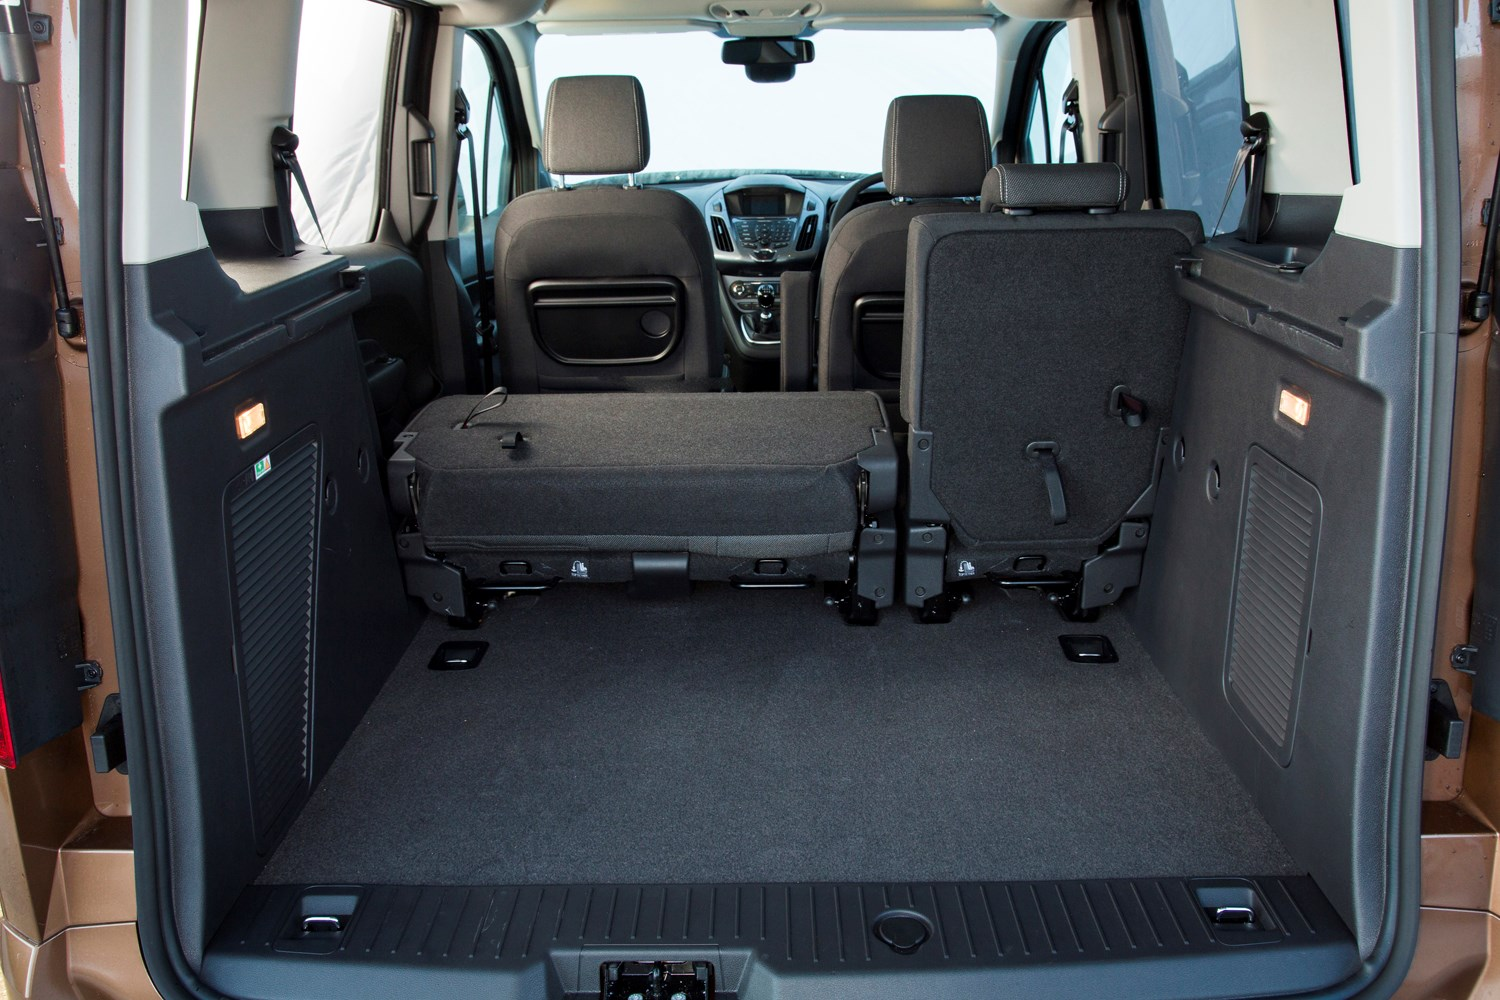 Ford Tourneo Connect 2020 Practicality Boot Space Dimensions